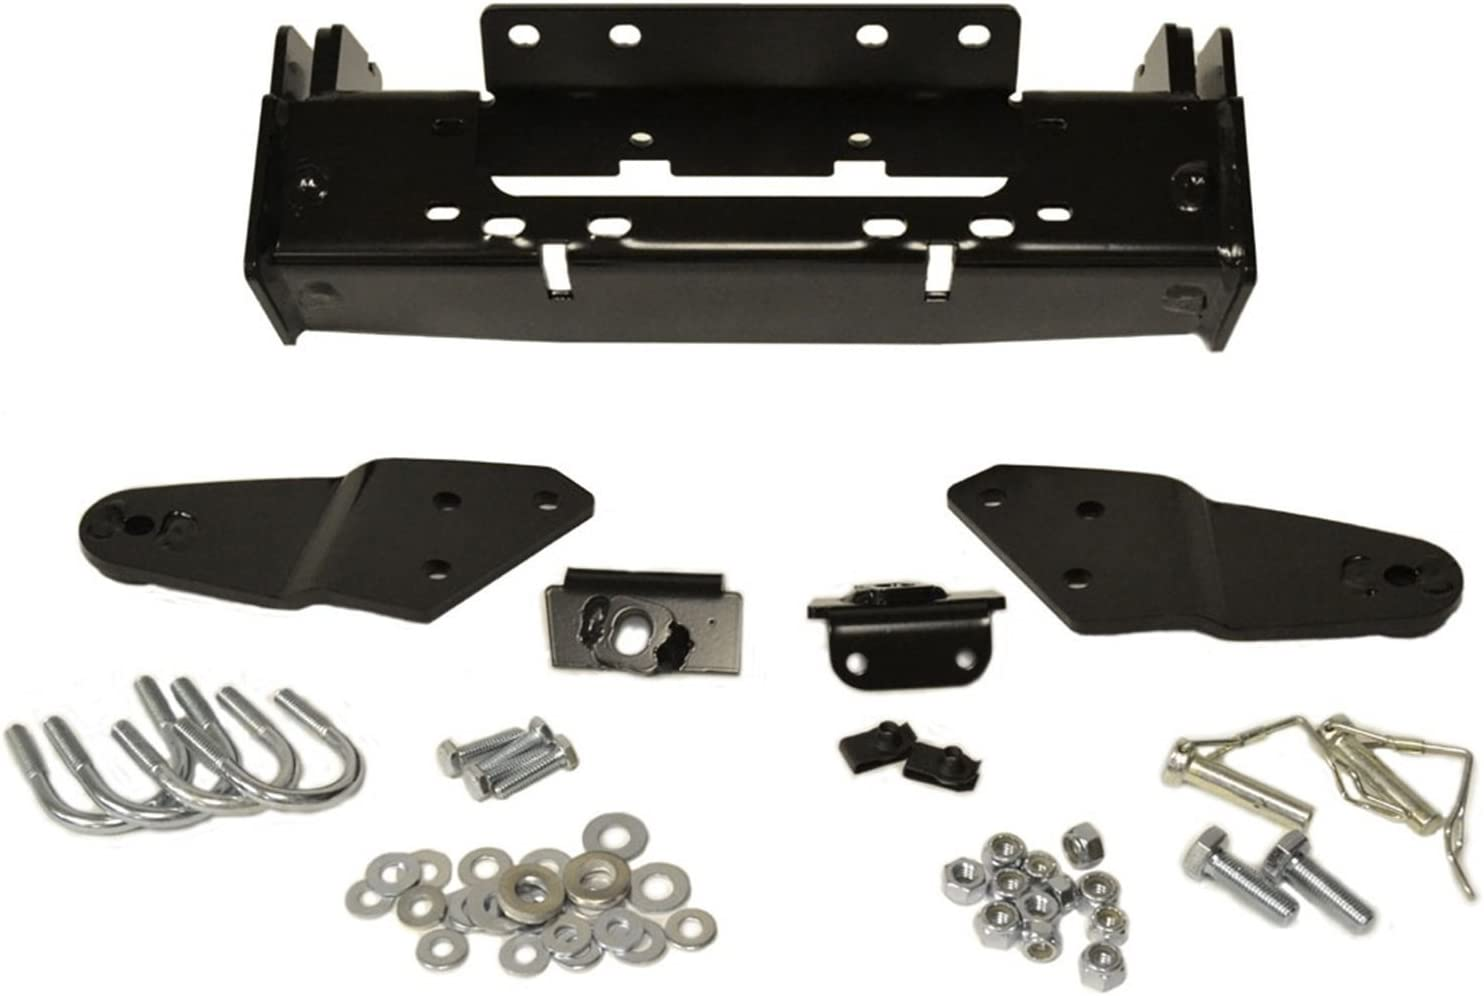 PLW MNT GRIZZLY 550//700 2012 Manufacturer 2012 Yamaha YFM550 Grizzly FI 4x4 Auto Plow System Center Mount Kit Warn